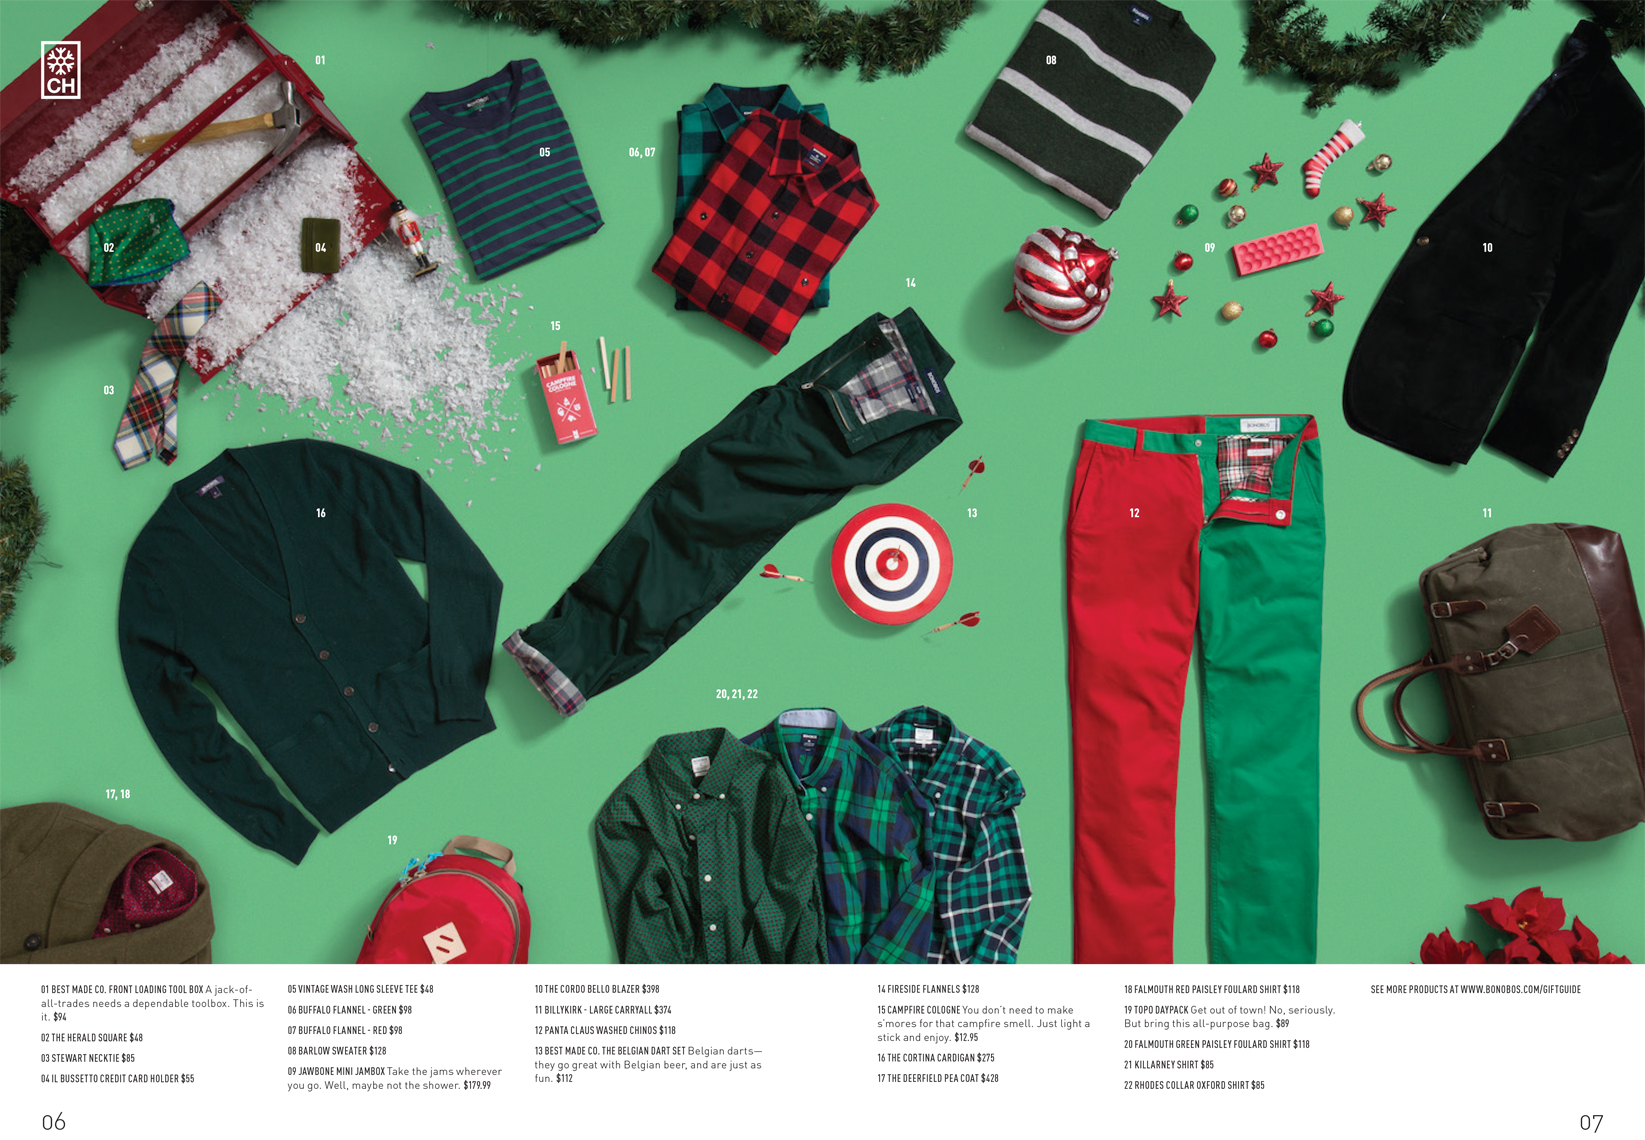 BONOBOS_iCatalog_GiftGuide_Holiday13 copy 2